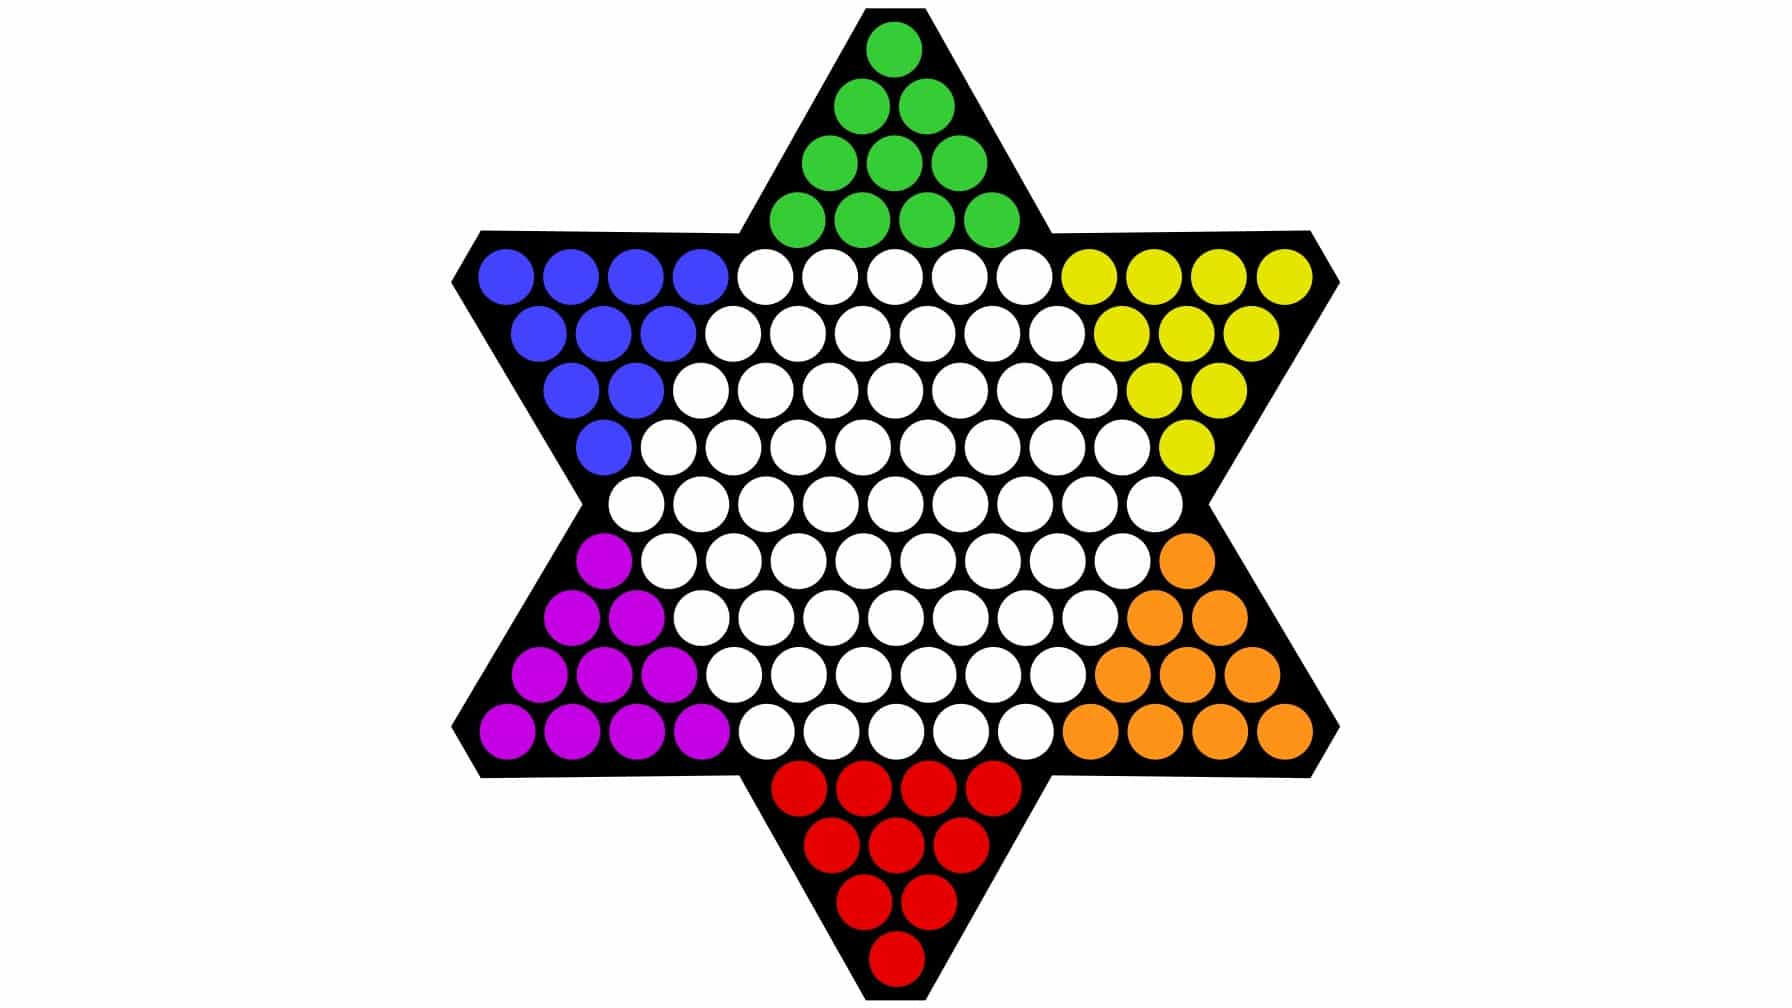 Chinese Checkers Game Rules and How to Play Guide